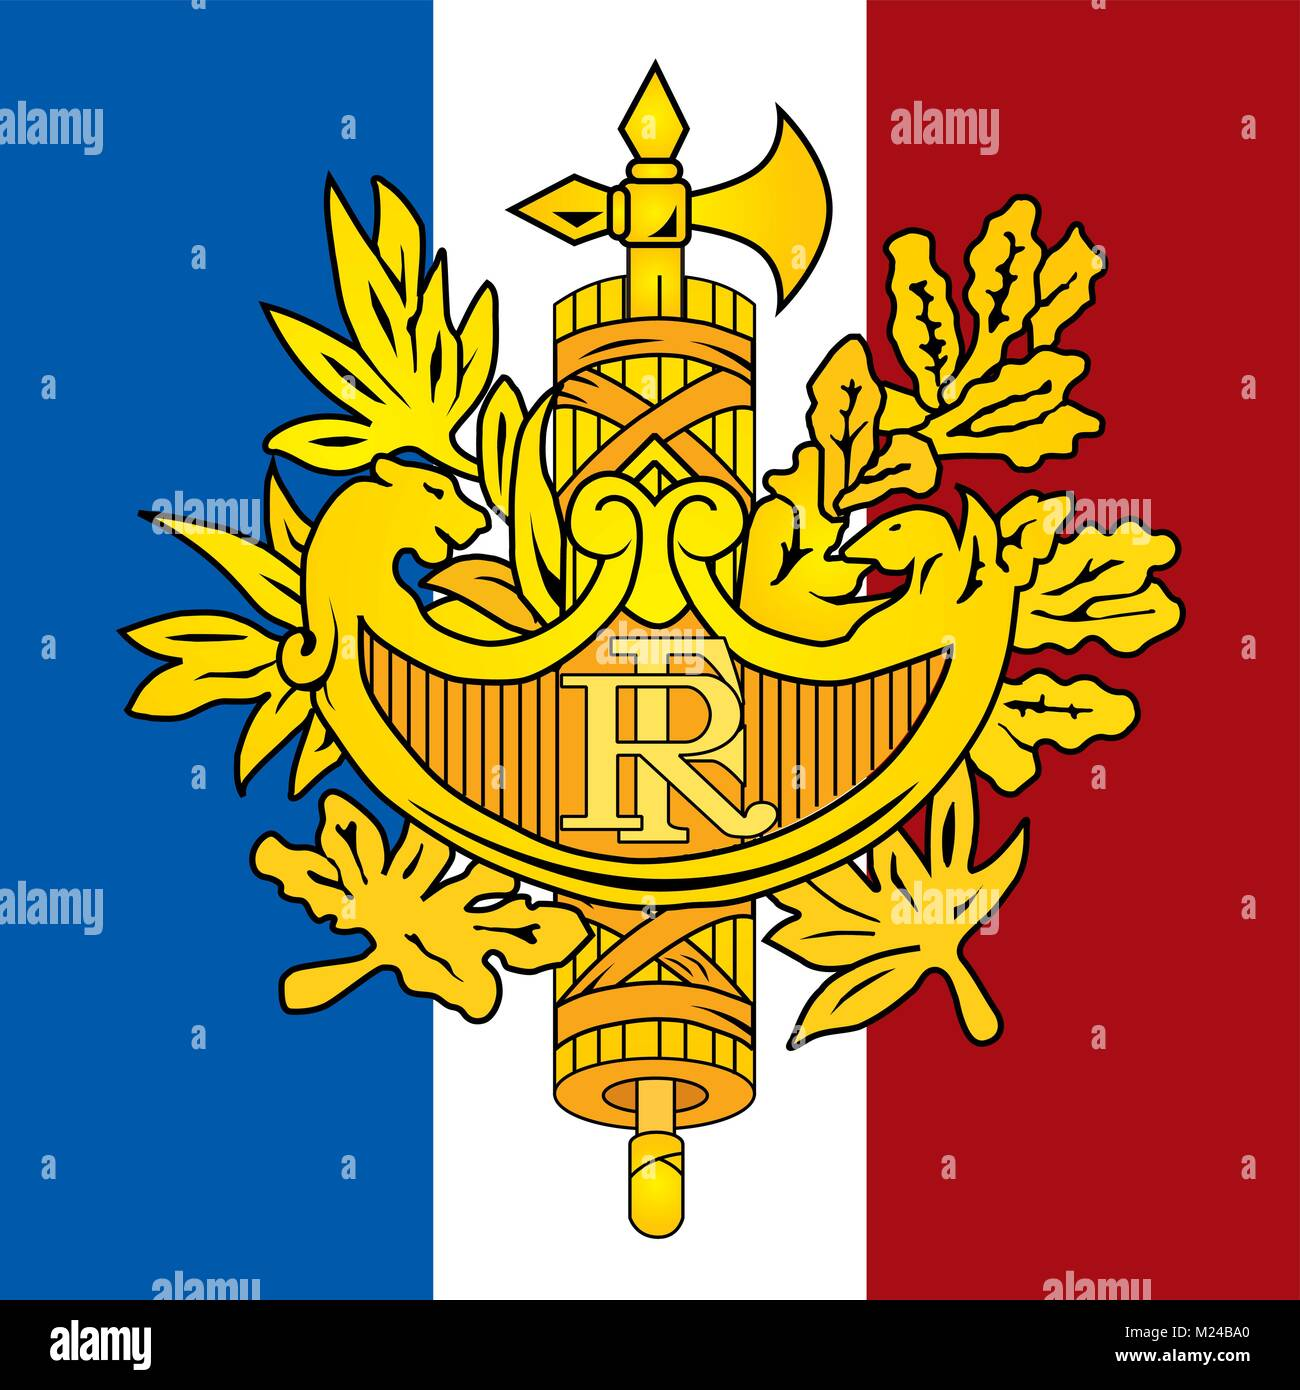 France coat of arms and flag, official symbols of the nation - Stock Vector